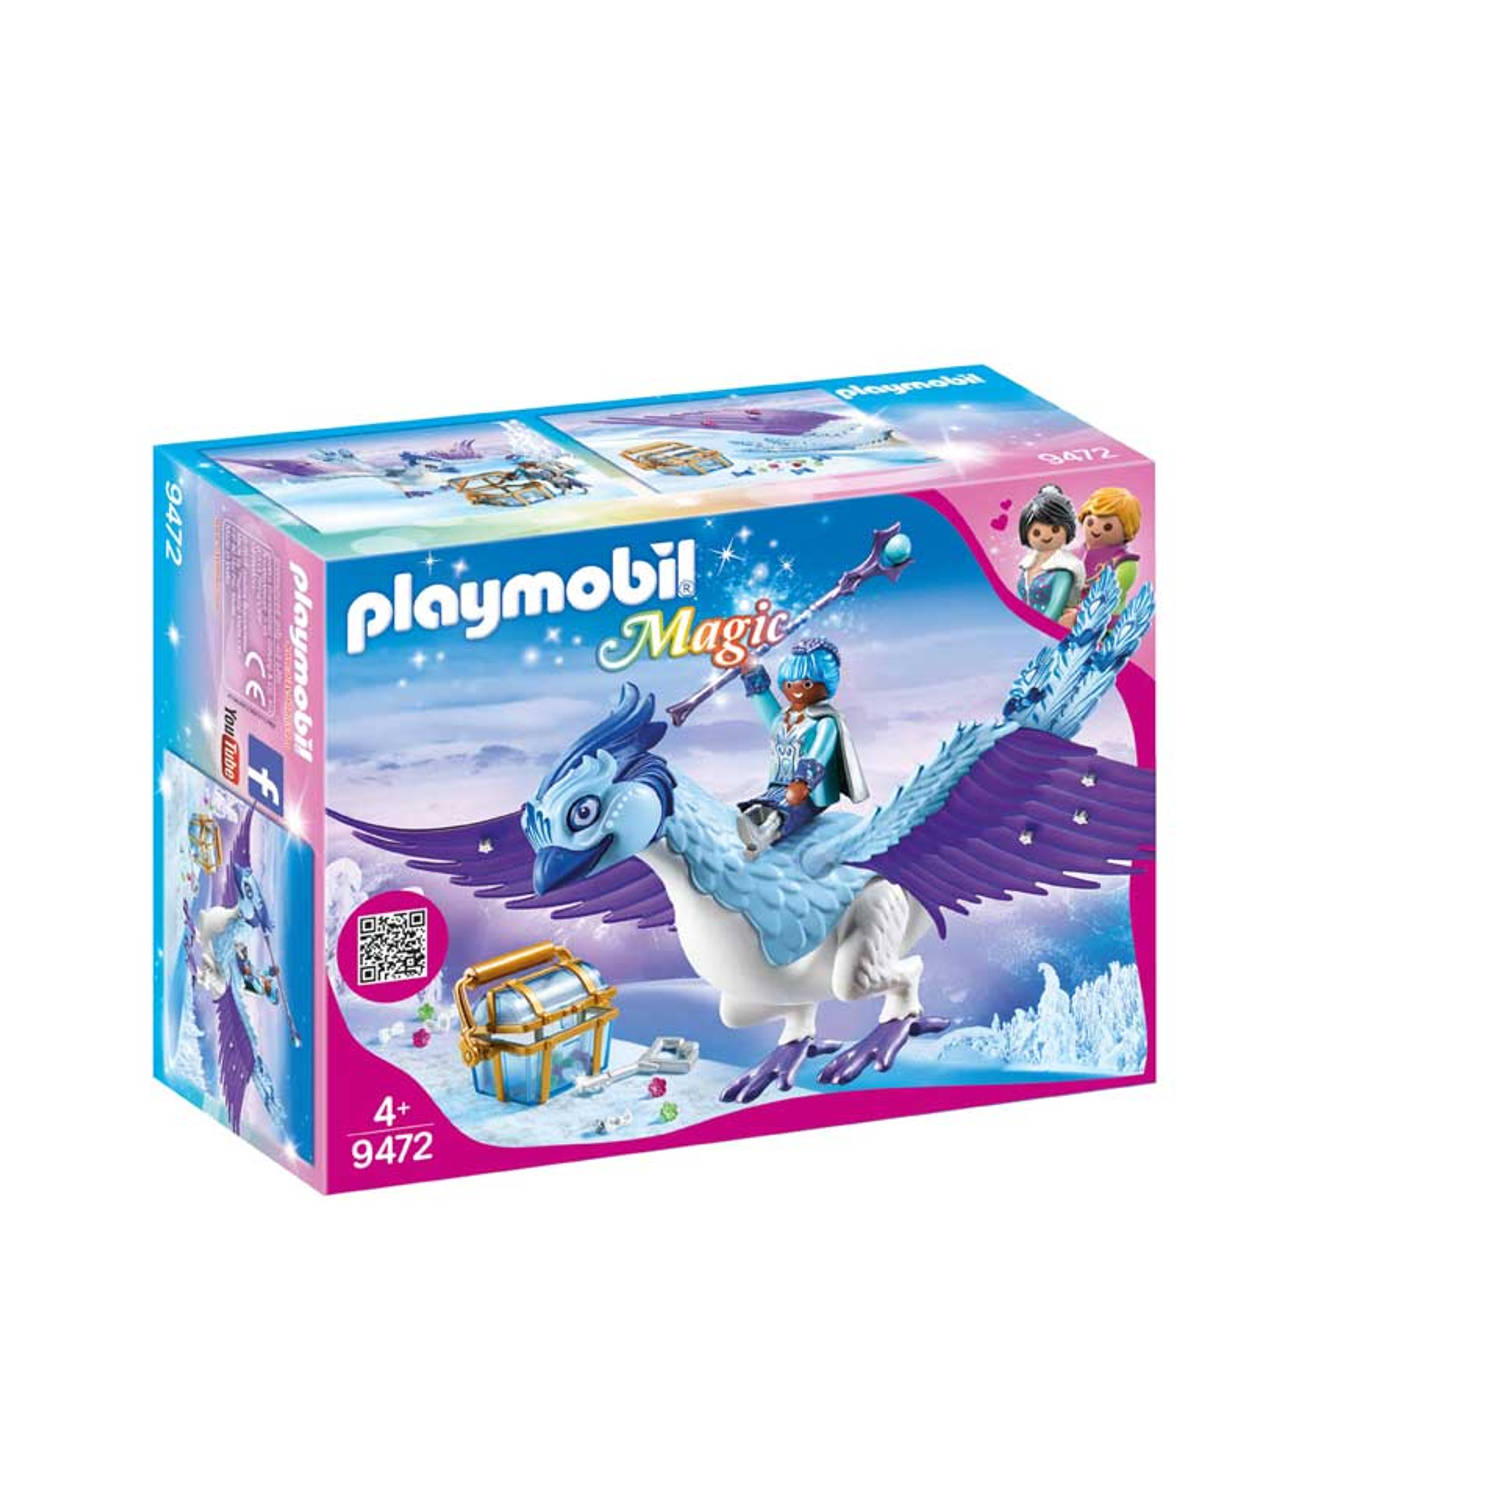 Playmobil Magic - Fenix en Sinikka 9472